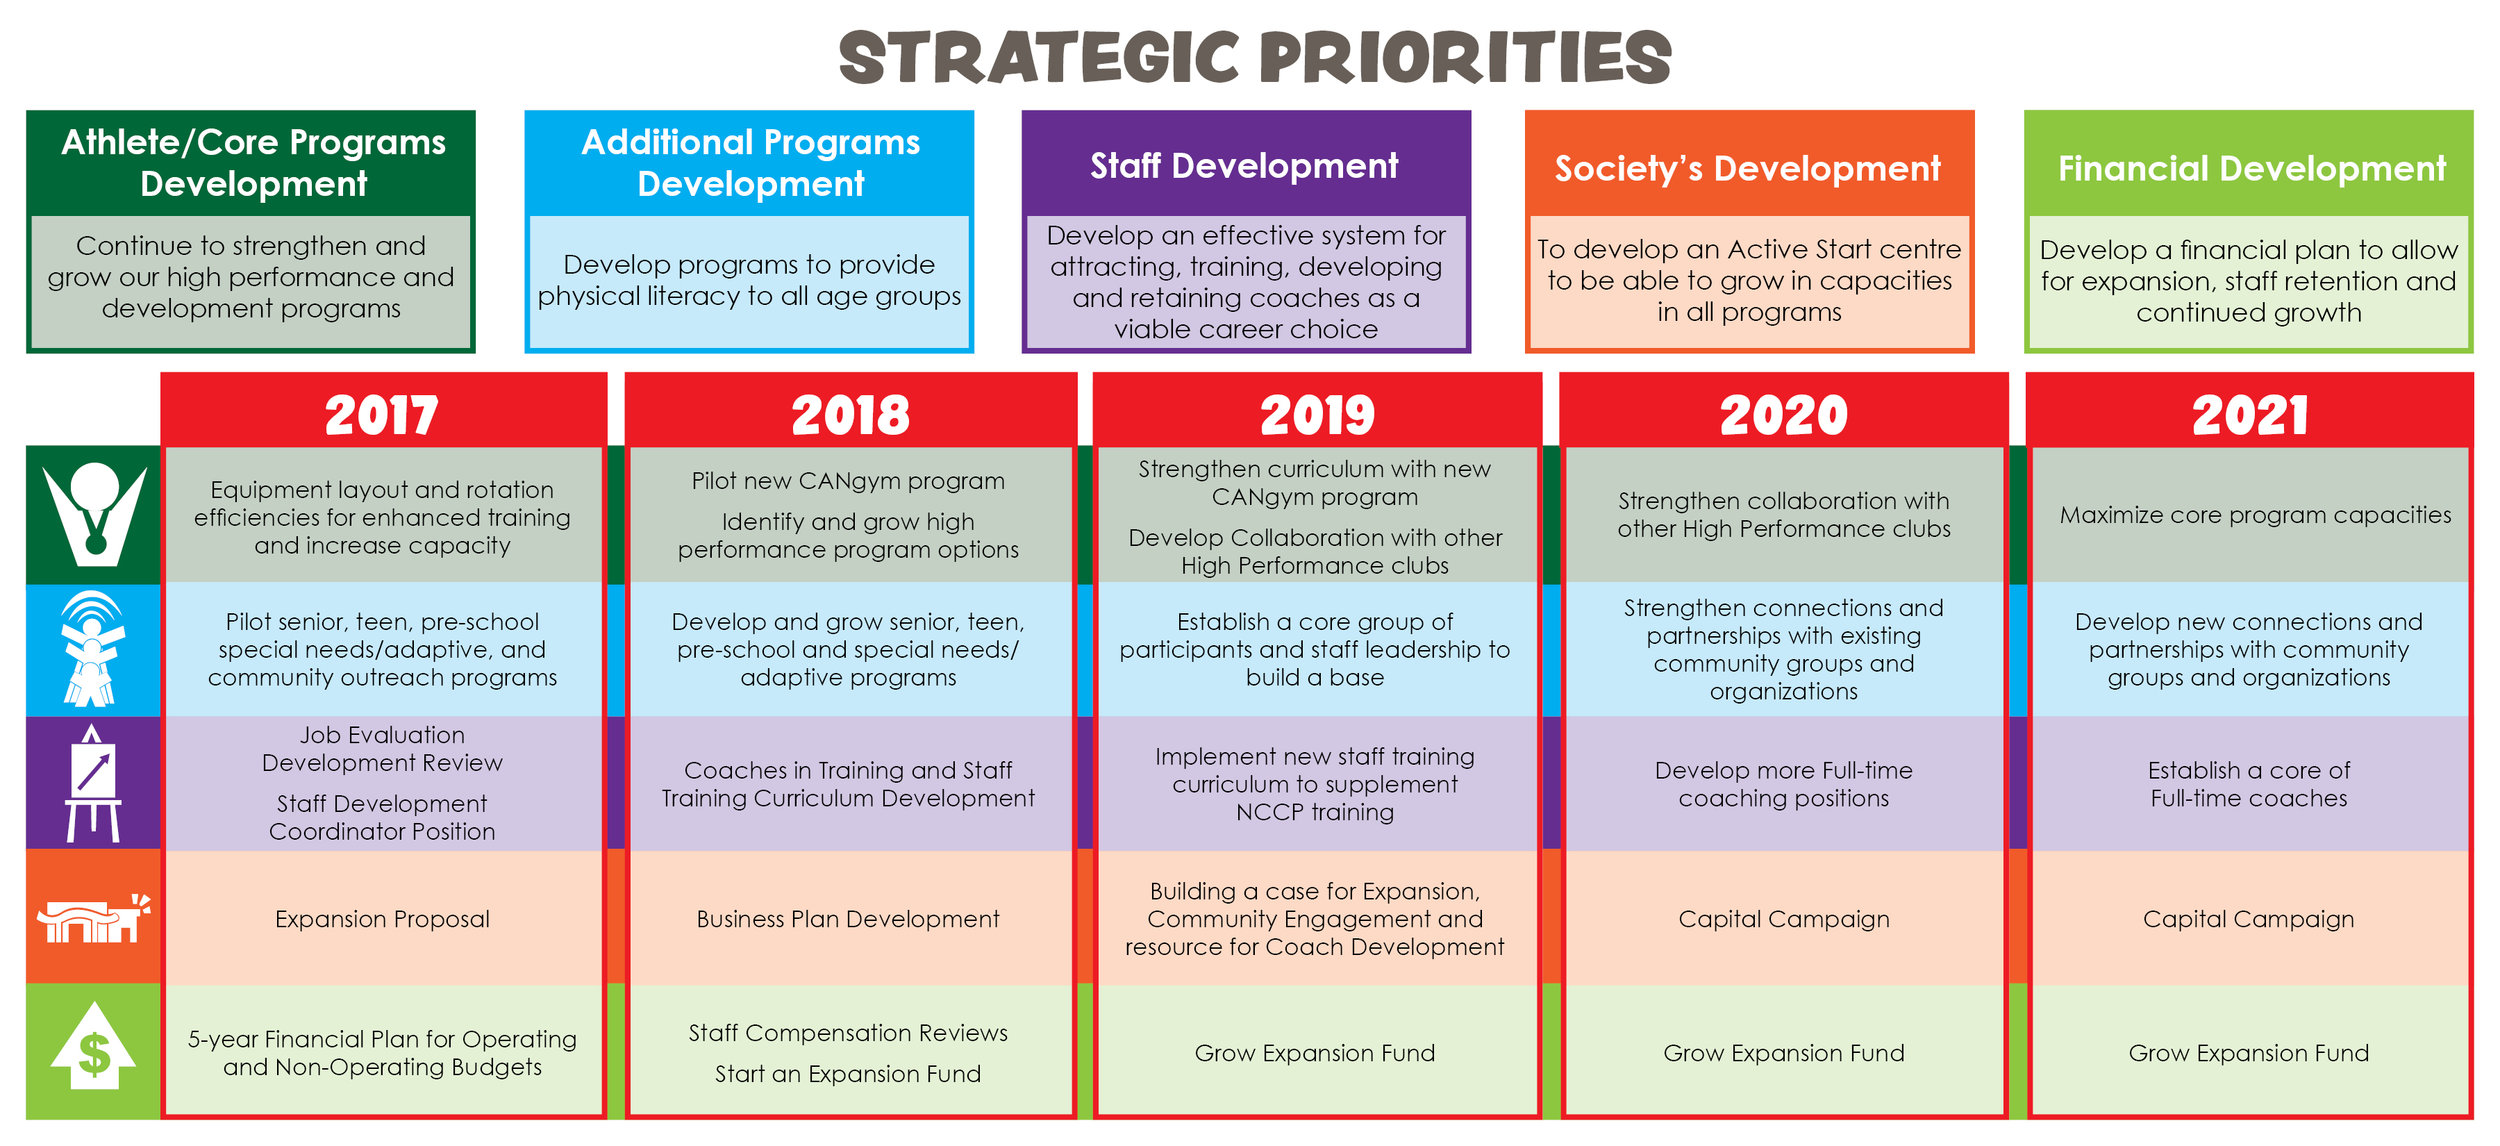 AGM-strategicprioritiest-2018-forweb.jpg